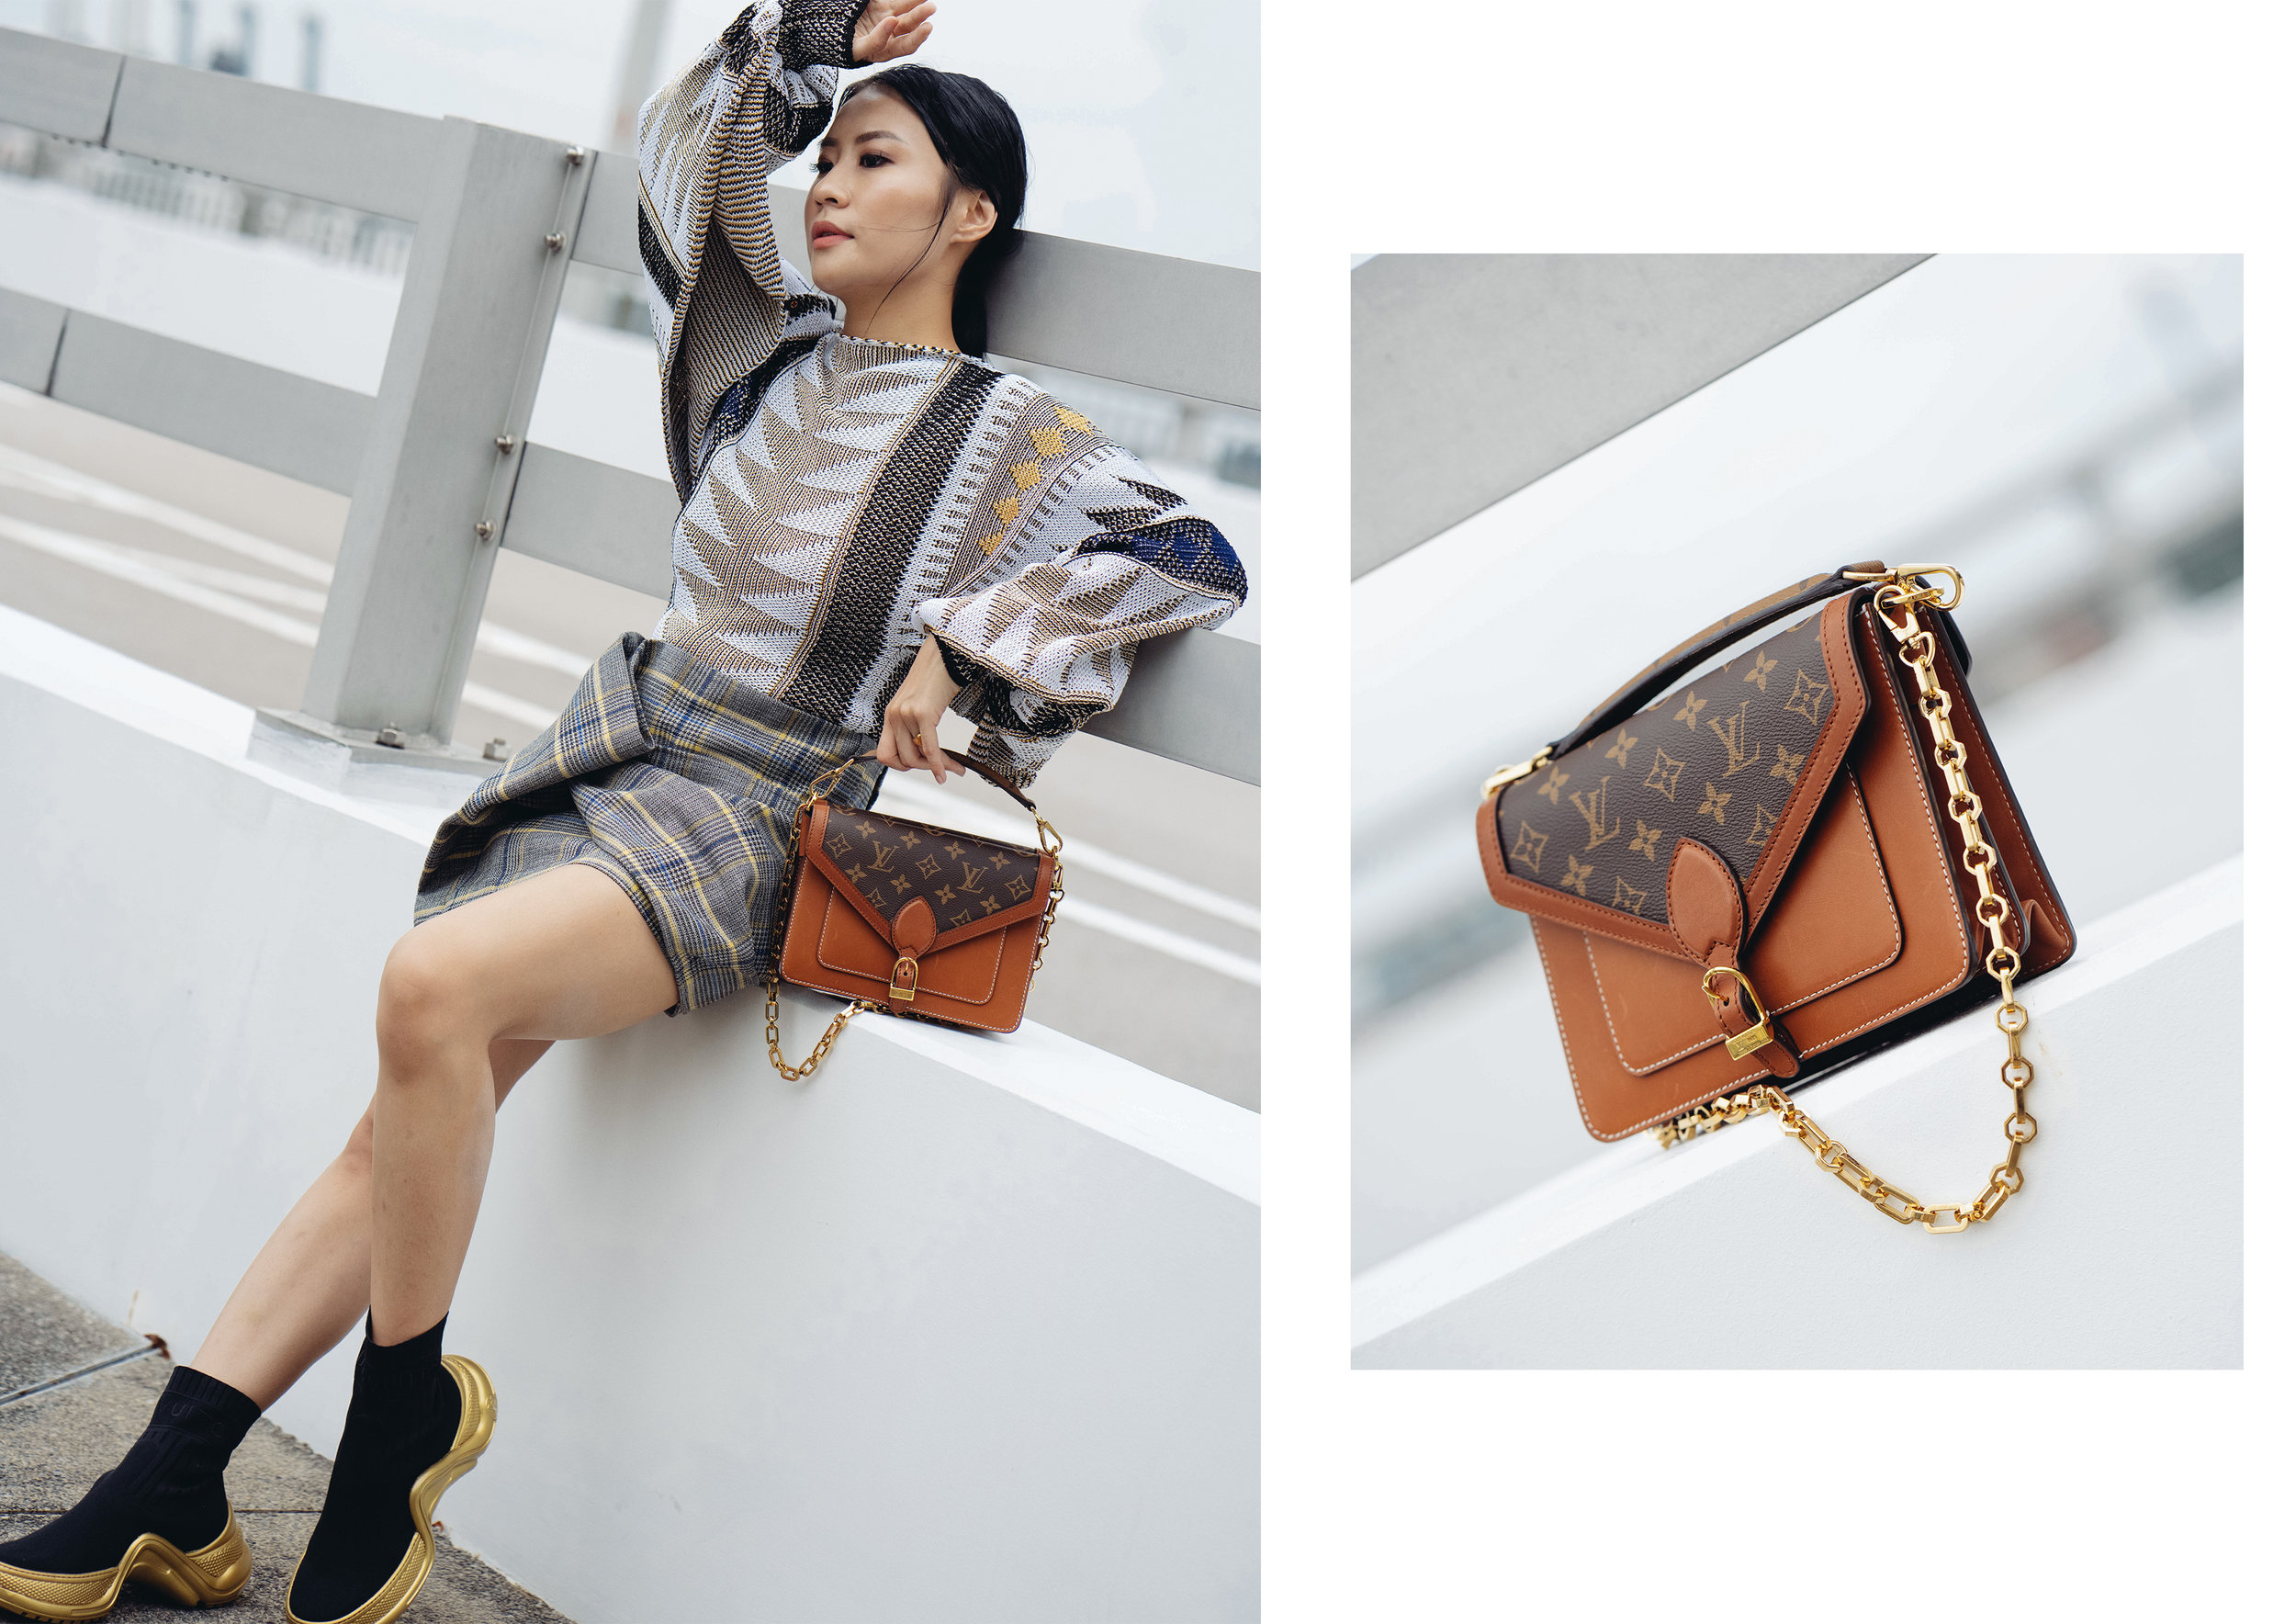 Outfit:  Jacquard Knit Top with Open Sleeves ,  Short Gathered Skirt ,  LV Archlight Flat Chelsea Boot  and  Biface Monogram Handbag .